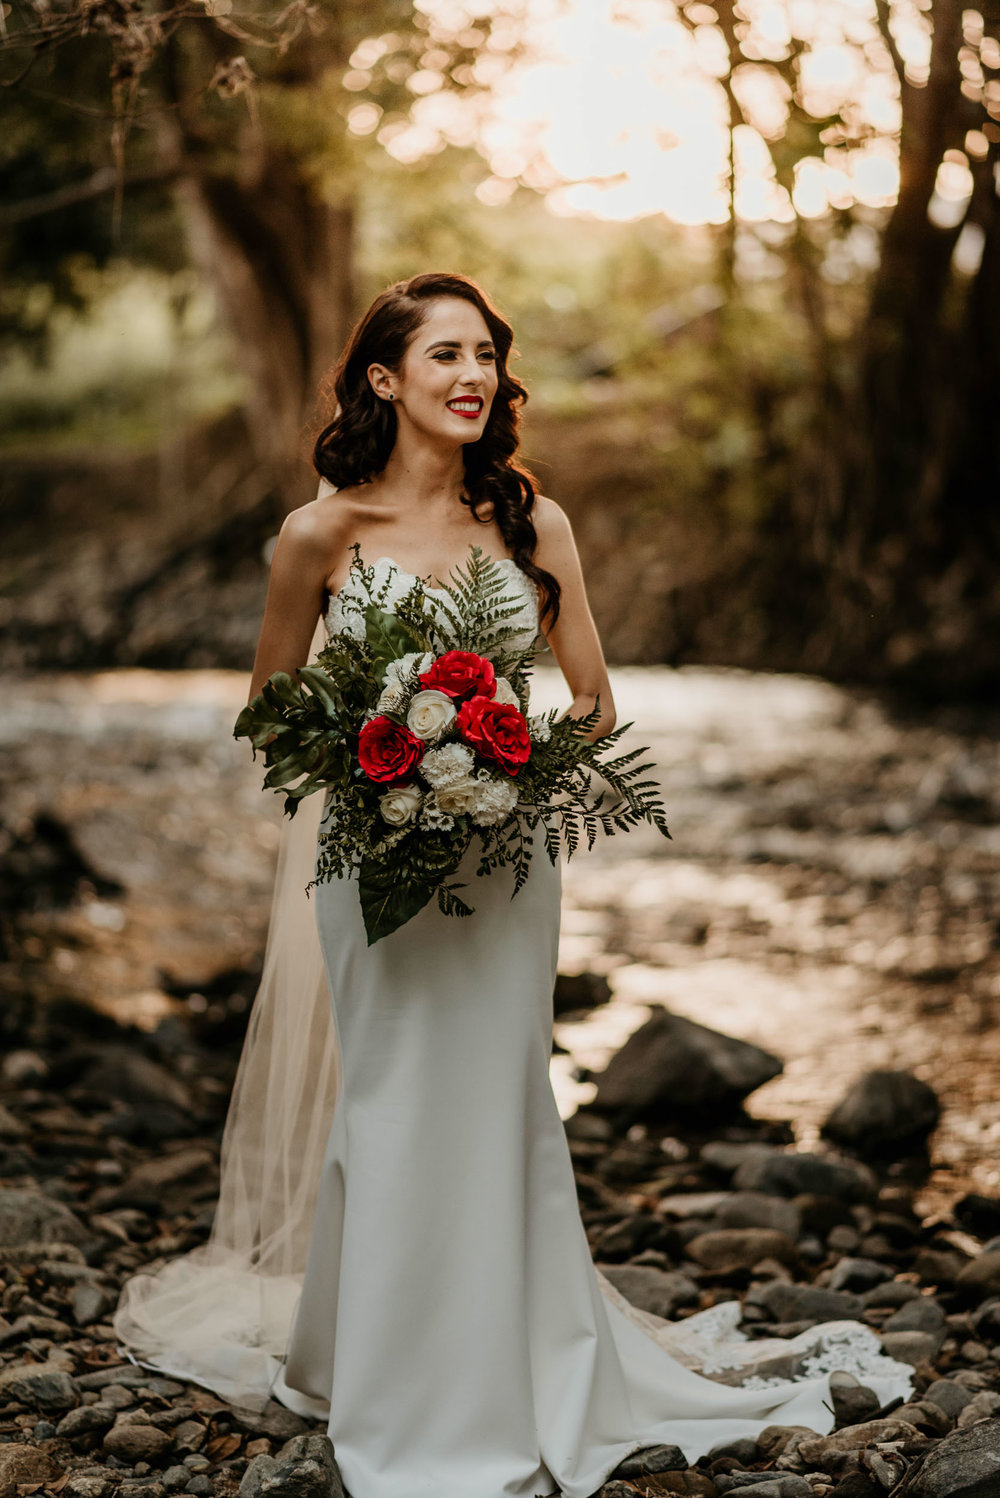 The Raw Photographer - Cairns Wedding Photographer - Laloli Garden Ceremony - Queensland Photography - Bride Dress - Devine Bridal Irene Costa - Destination Wed - CHRIS + KAITLYN-36.jpg